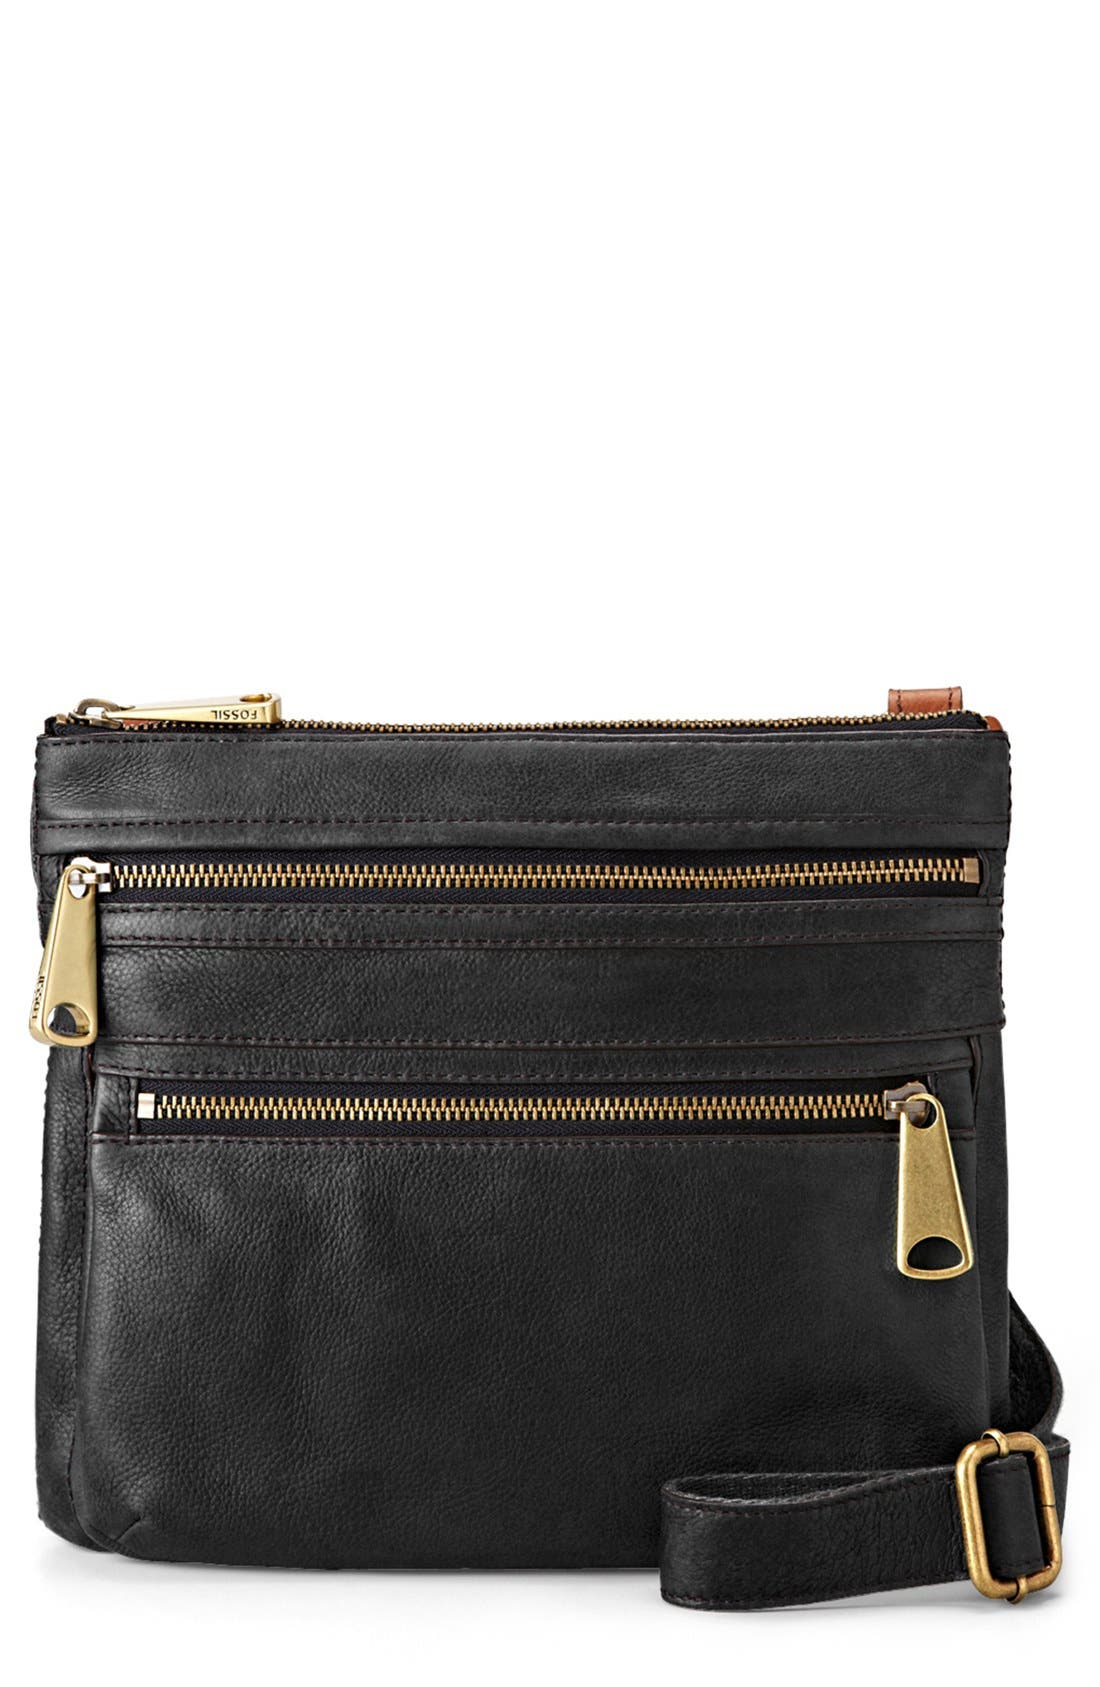 'Explorer' Crossbody Bag,                             Main thumbnail 1, color,                             001